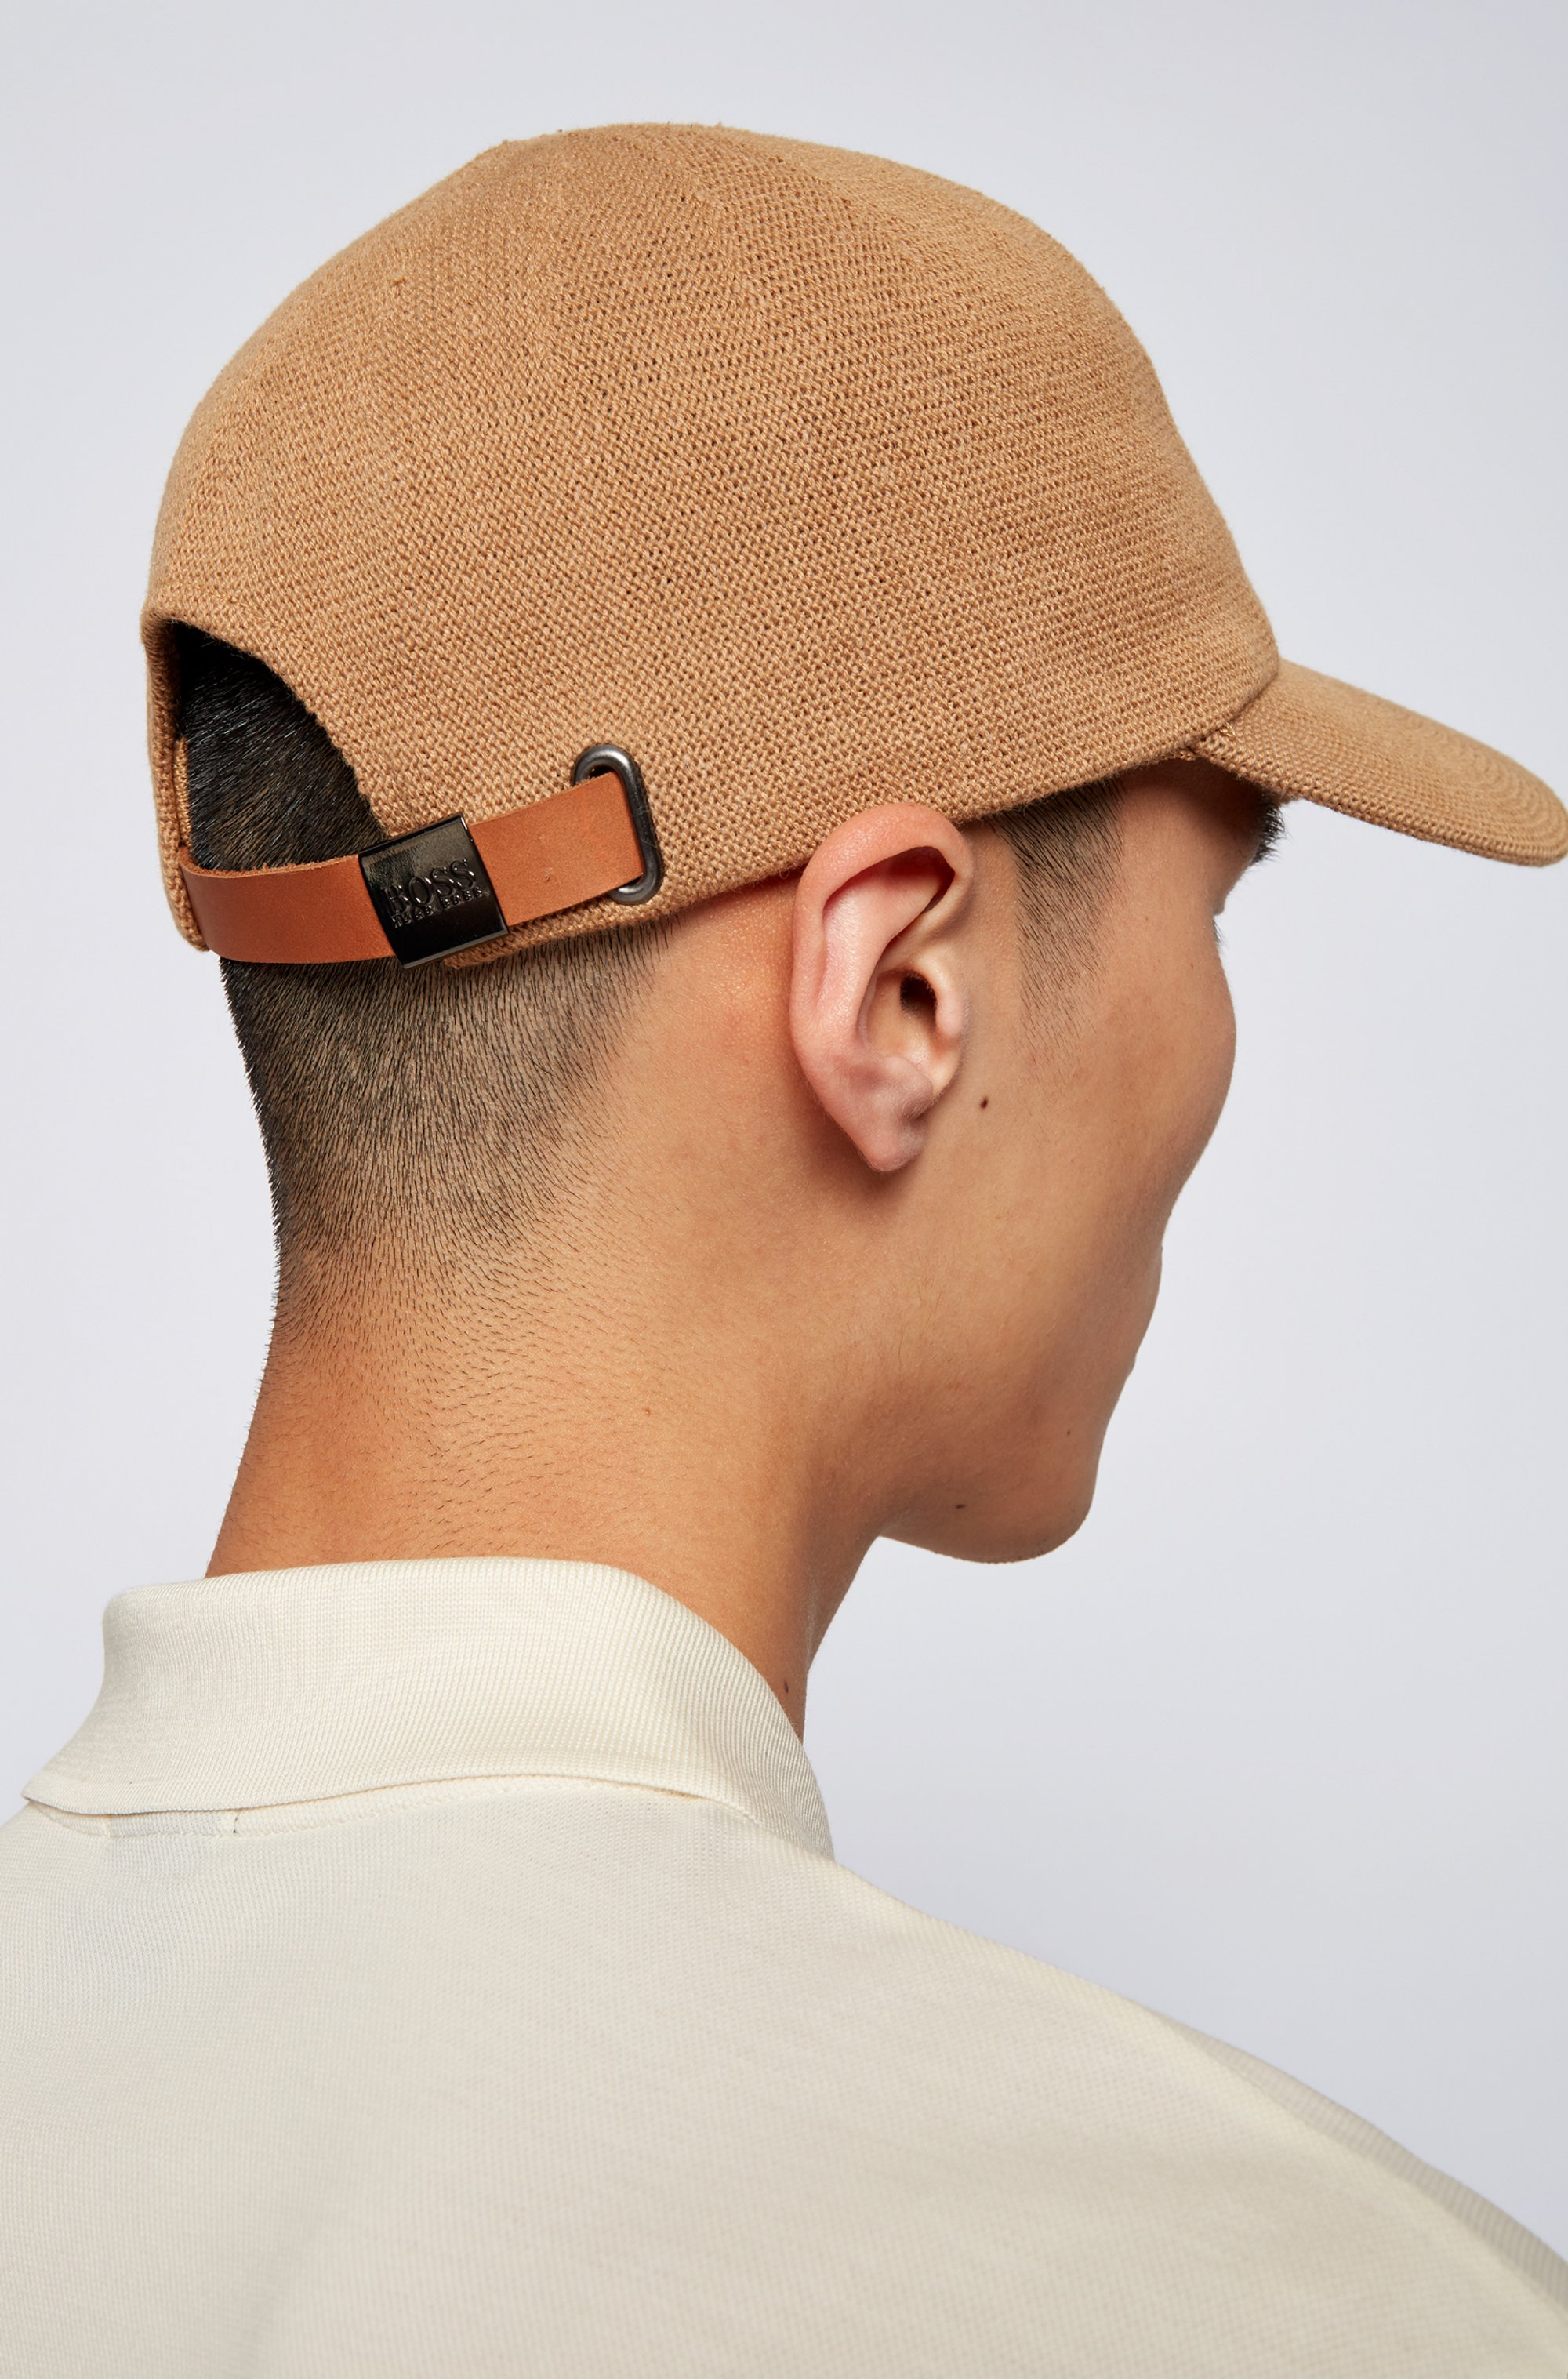 Knitted-cotton cap with adjustable leather strap